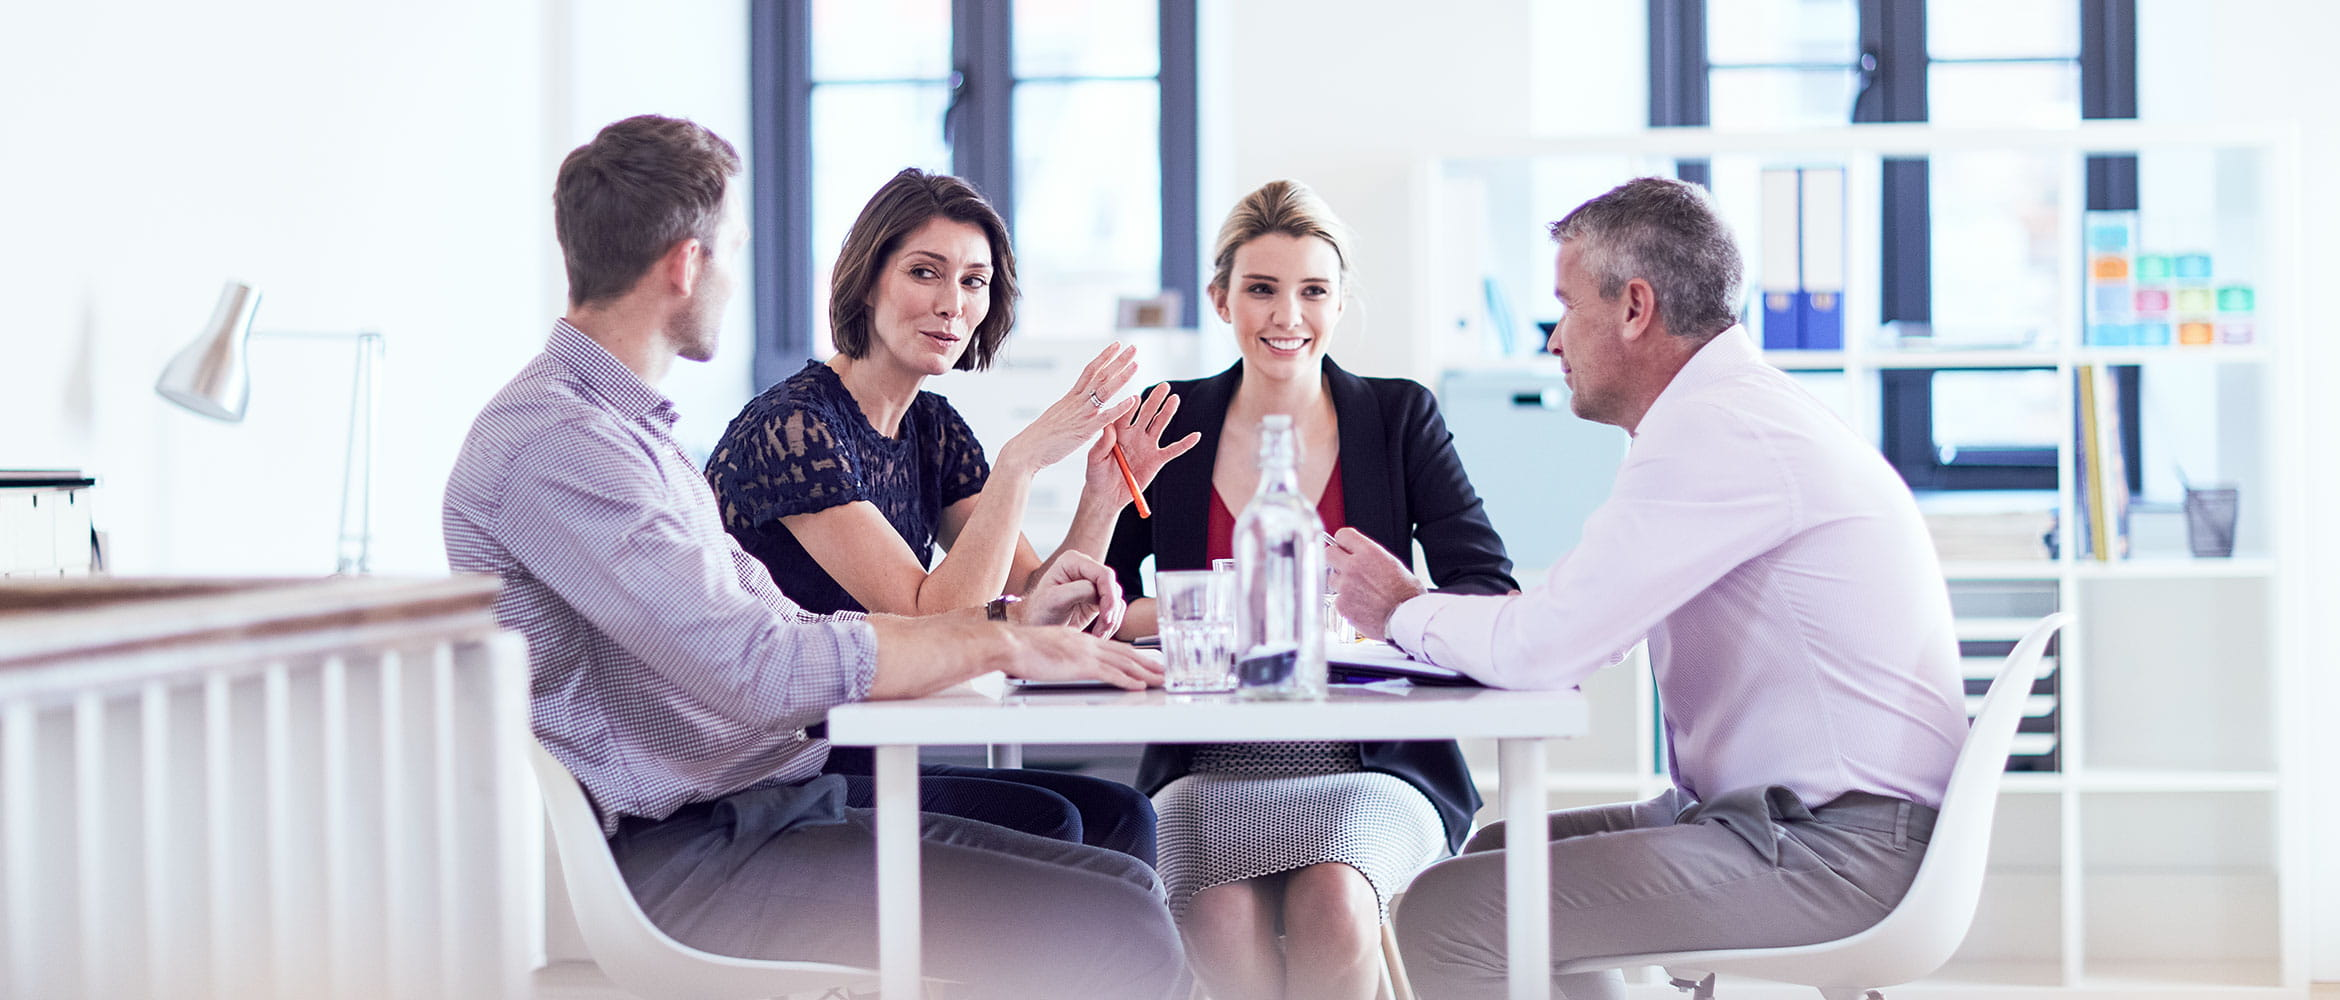 Four colleagues talking and smiling in an office setting